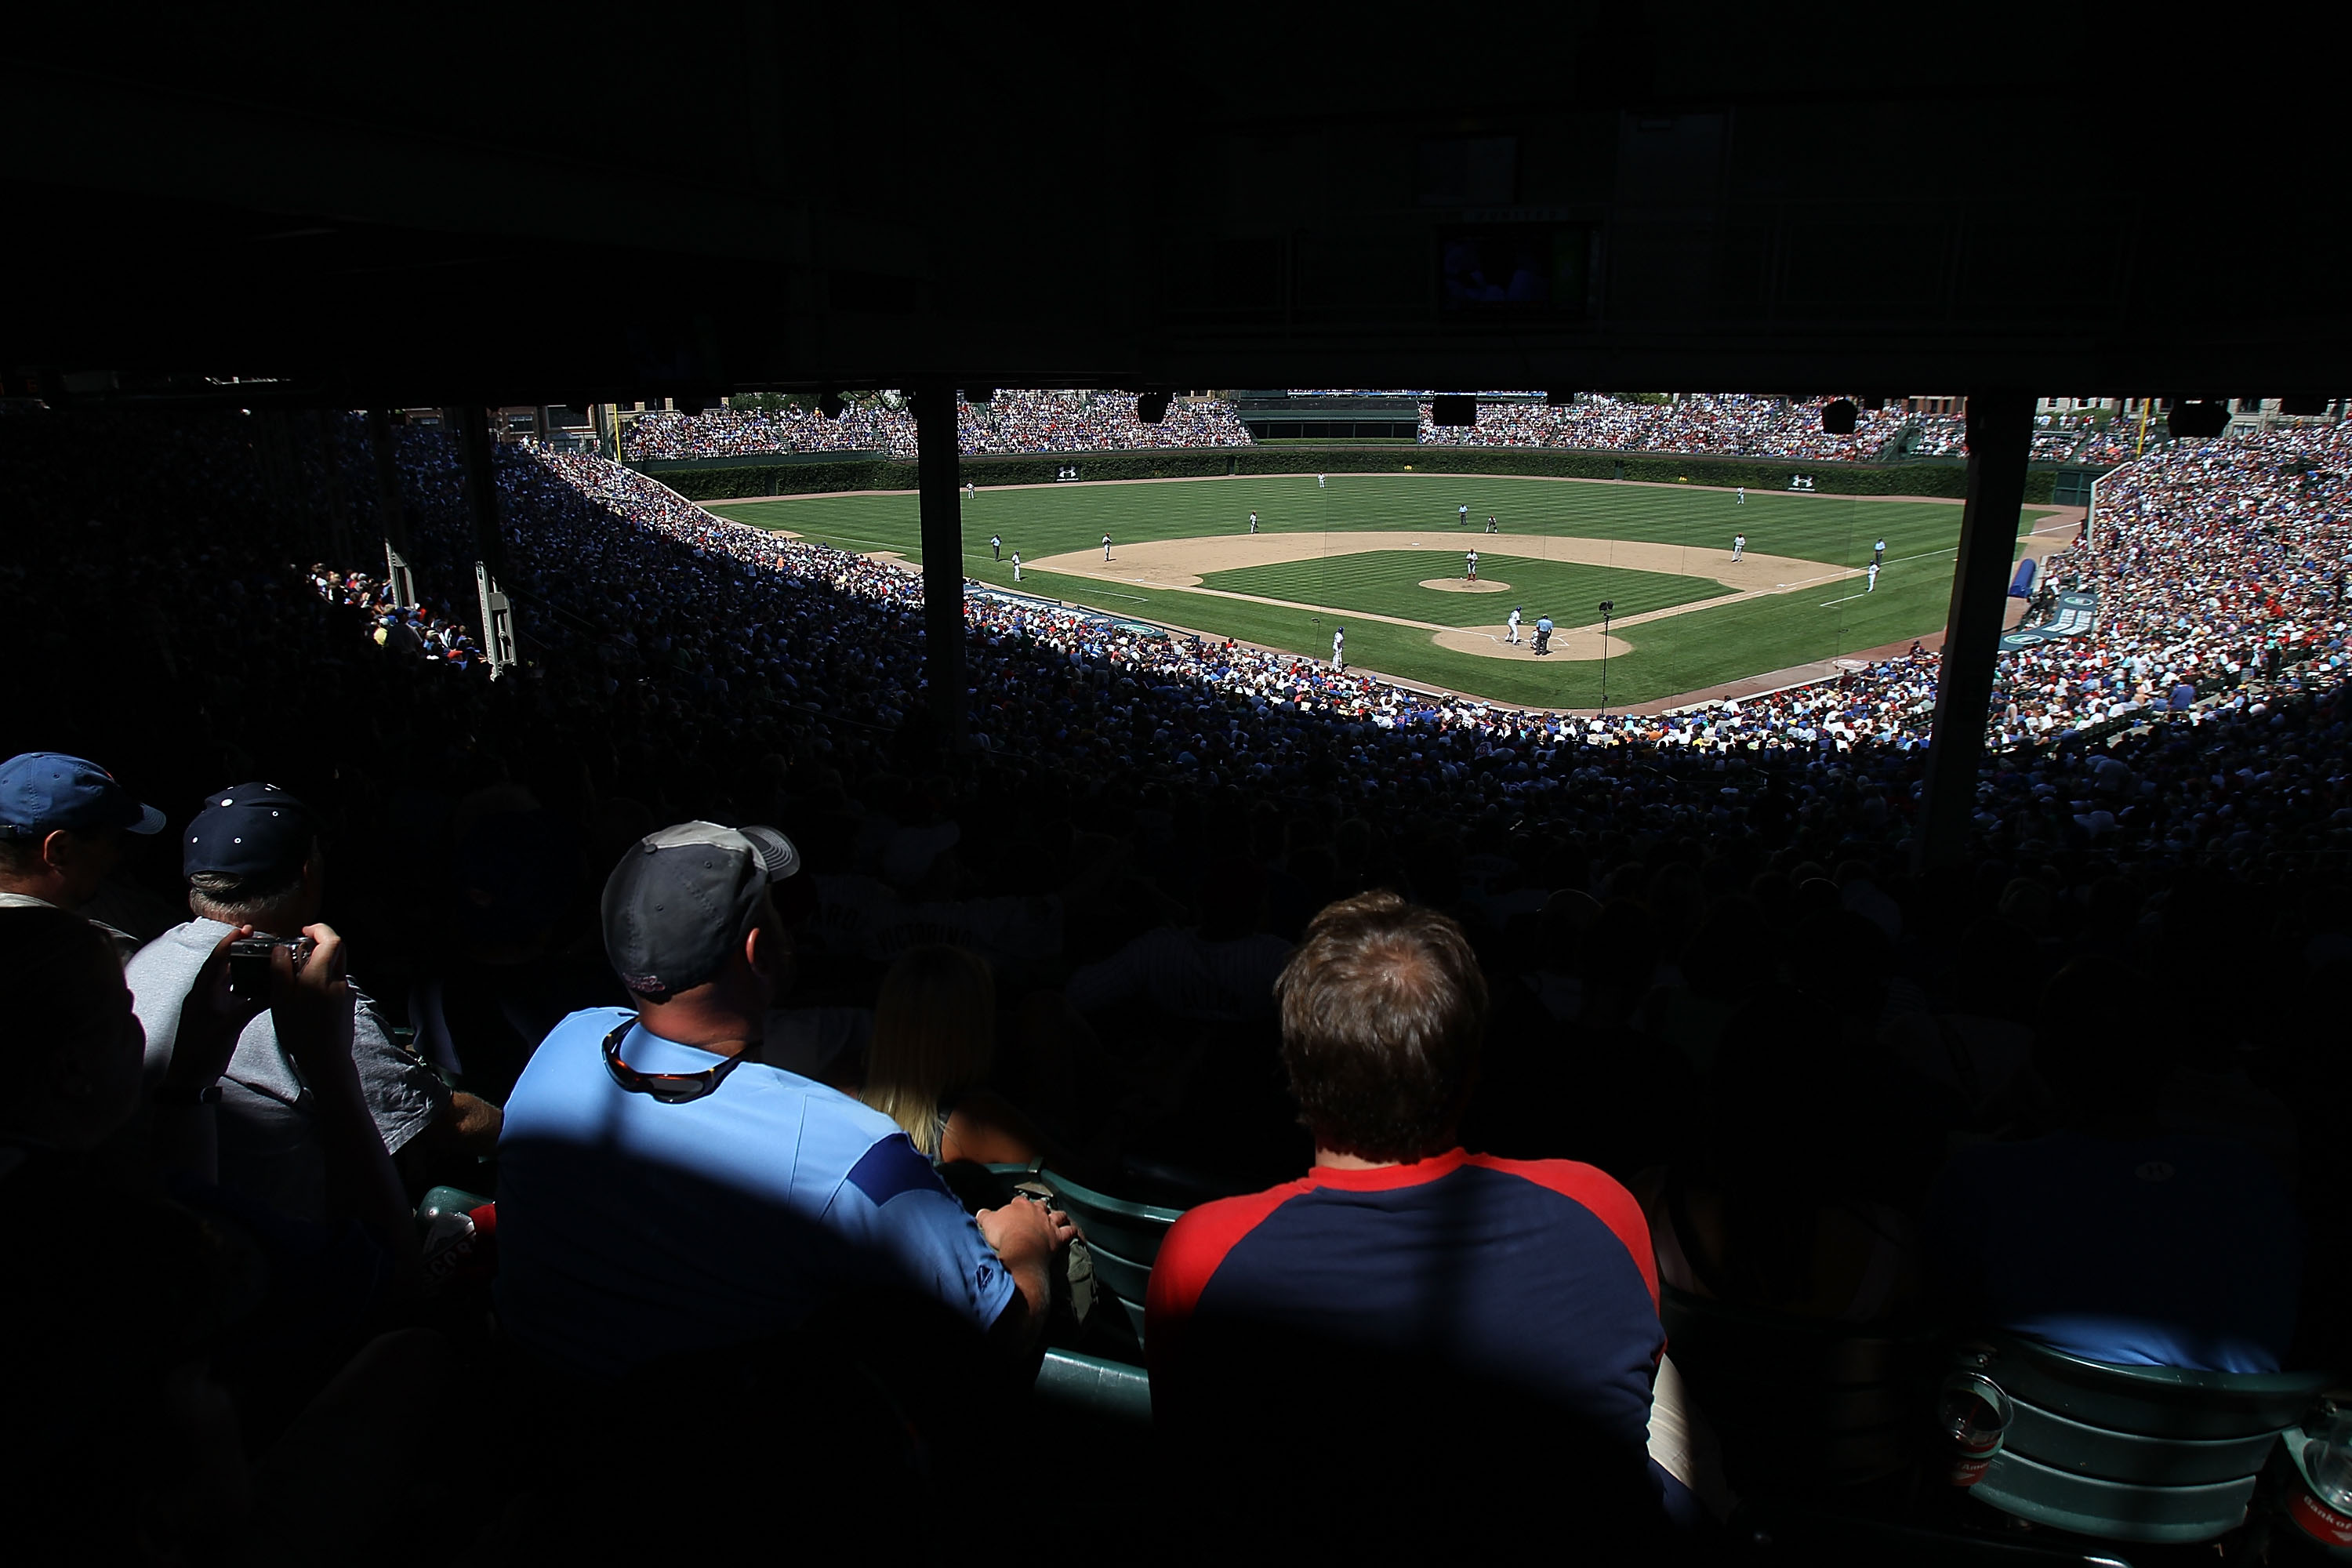 CHICAGO - JULY 16: A general view of Wrigley Field as fans watch the Chicago Cubs take on the Philadelphia Phillies on July 16, 2010 in Chicago, Illinois. The Cubs defeated the Phillies 4-3. (Photo by Jonathan Daniel/Getty Images)